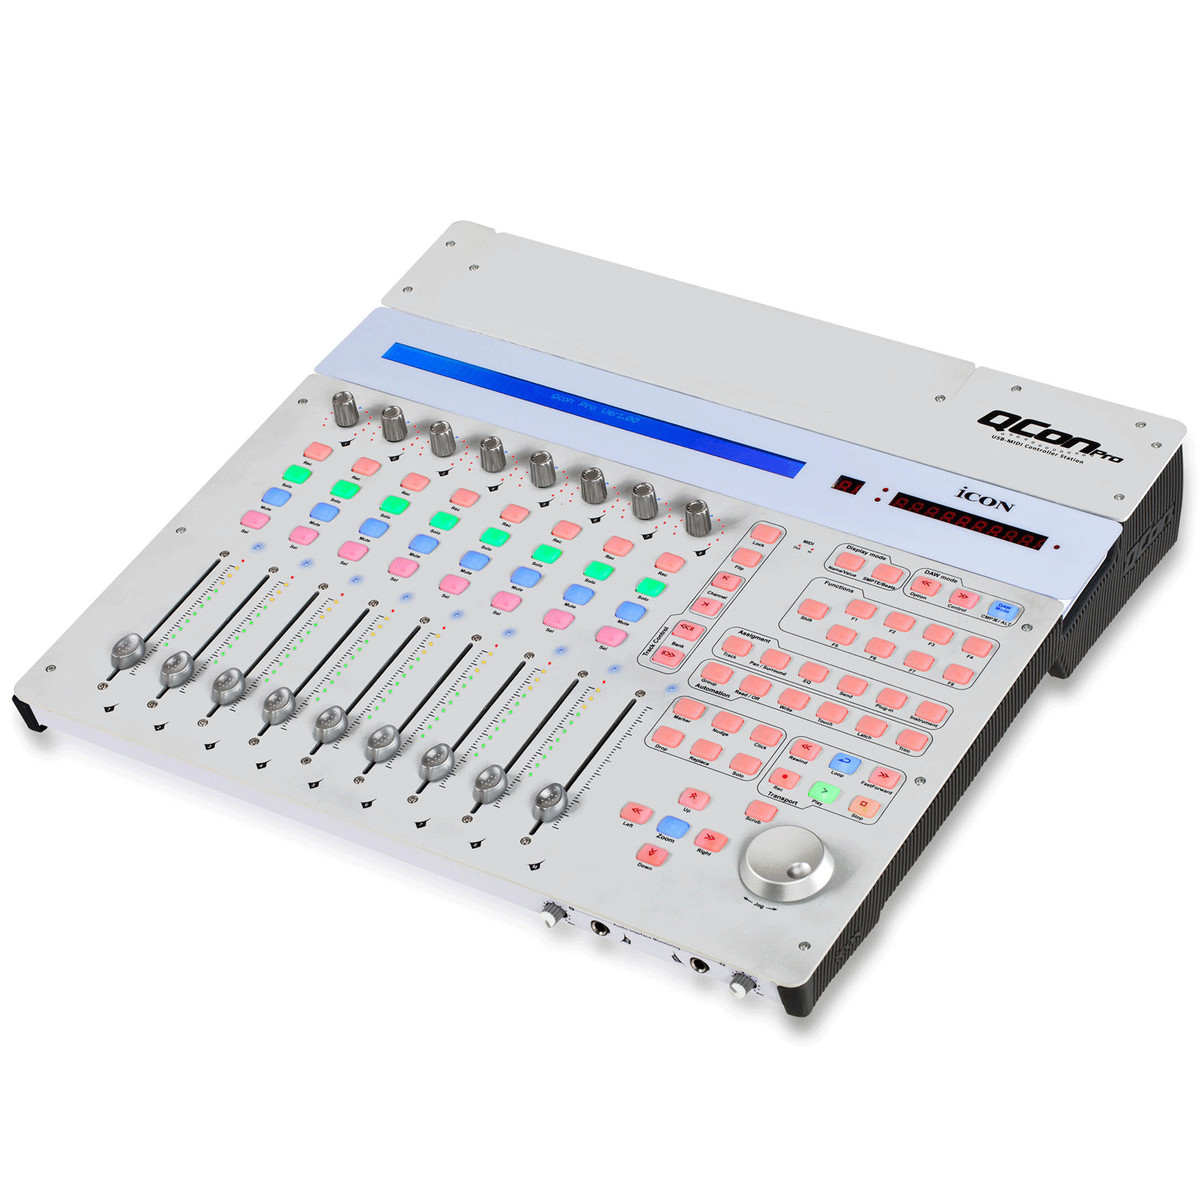 Icon Qcon Pro Usb Control Surface With Motorised Faders B Stock At Led Fader Controller Loading Zoom